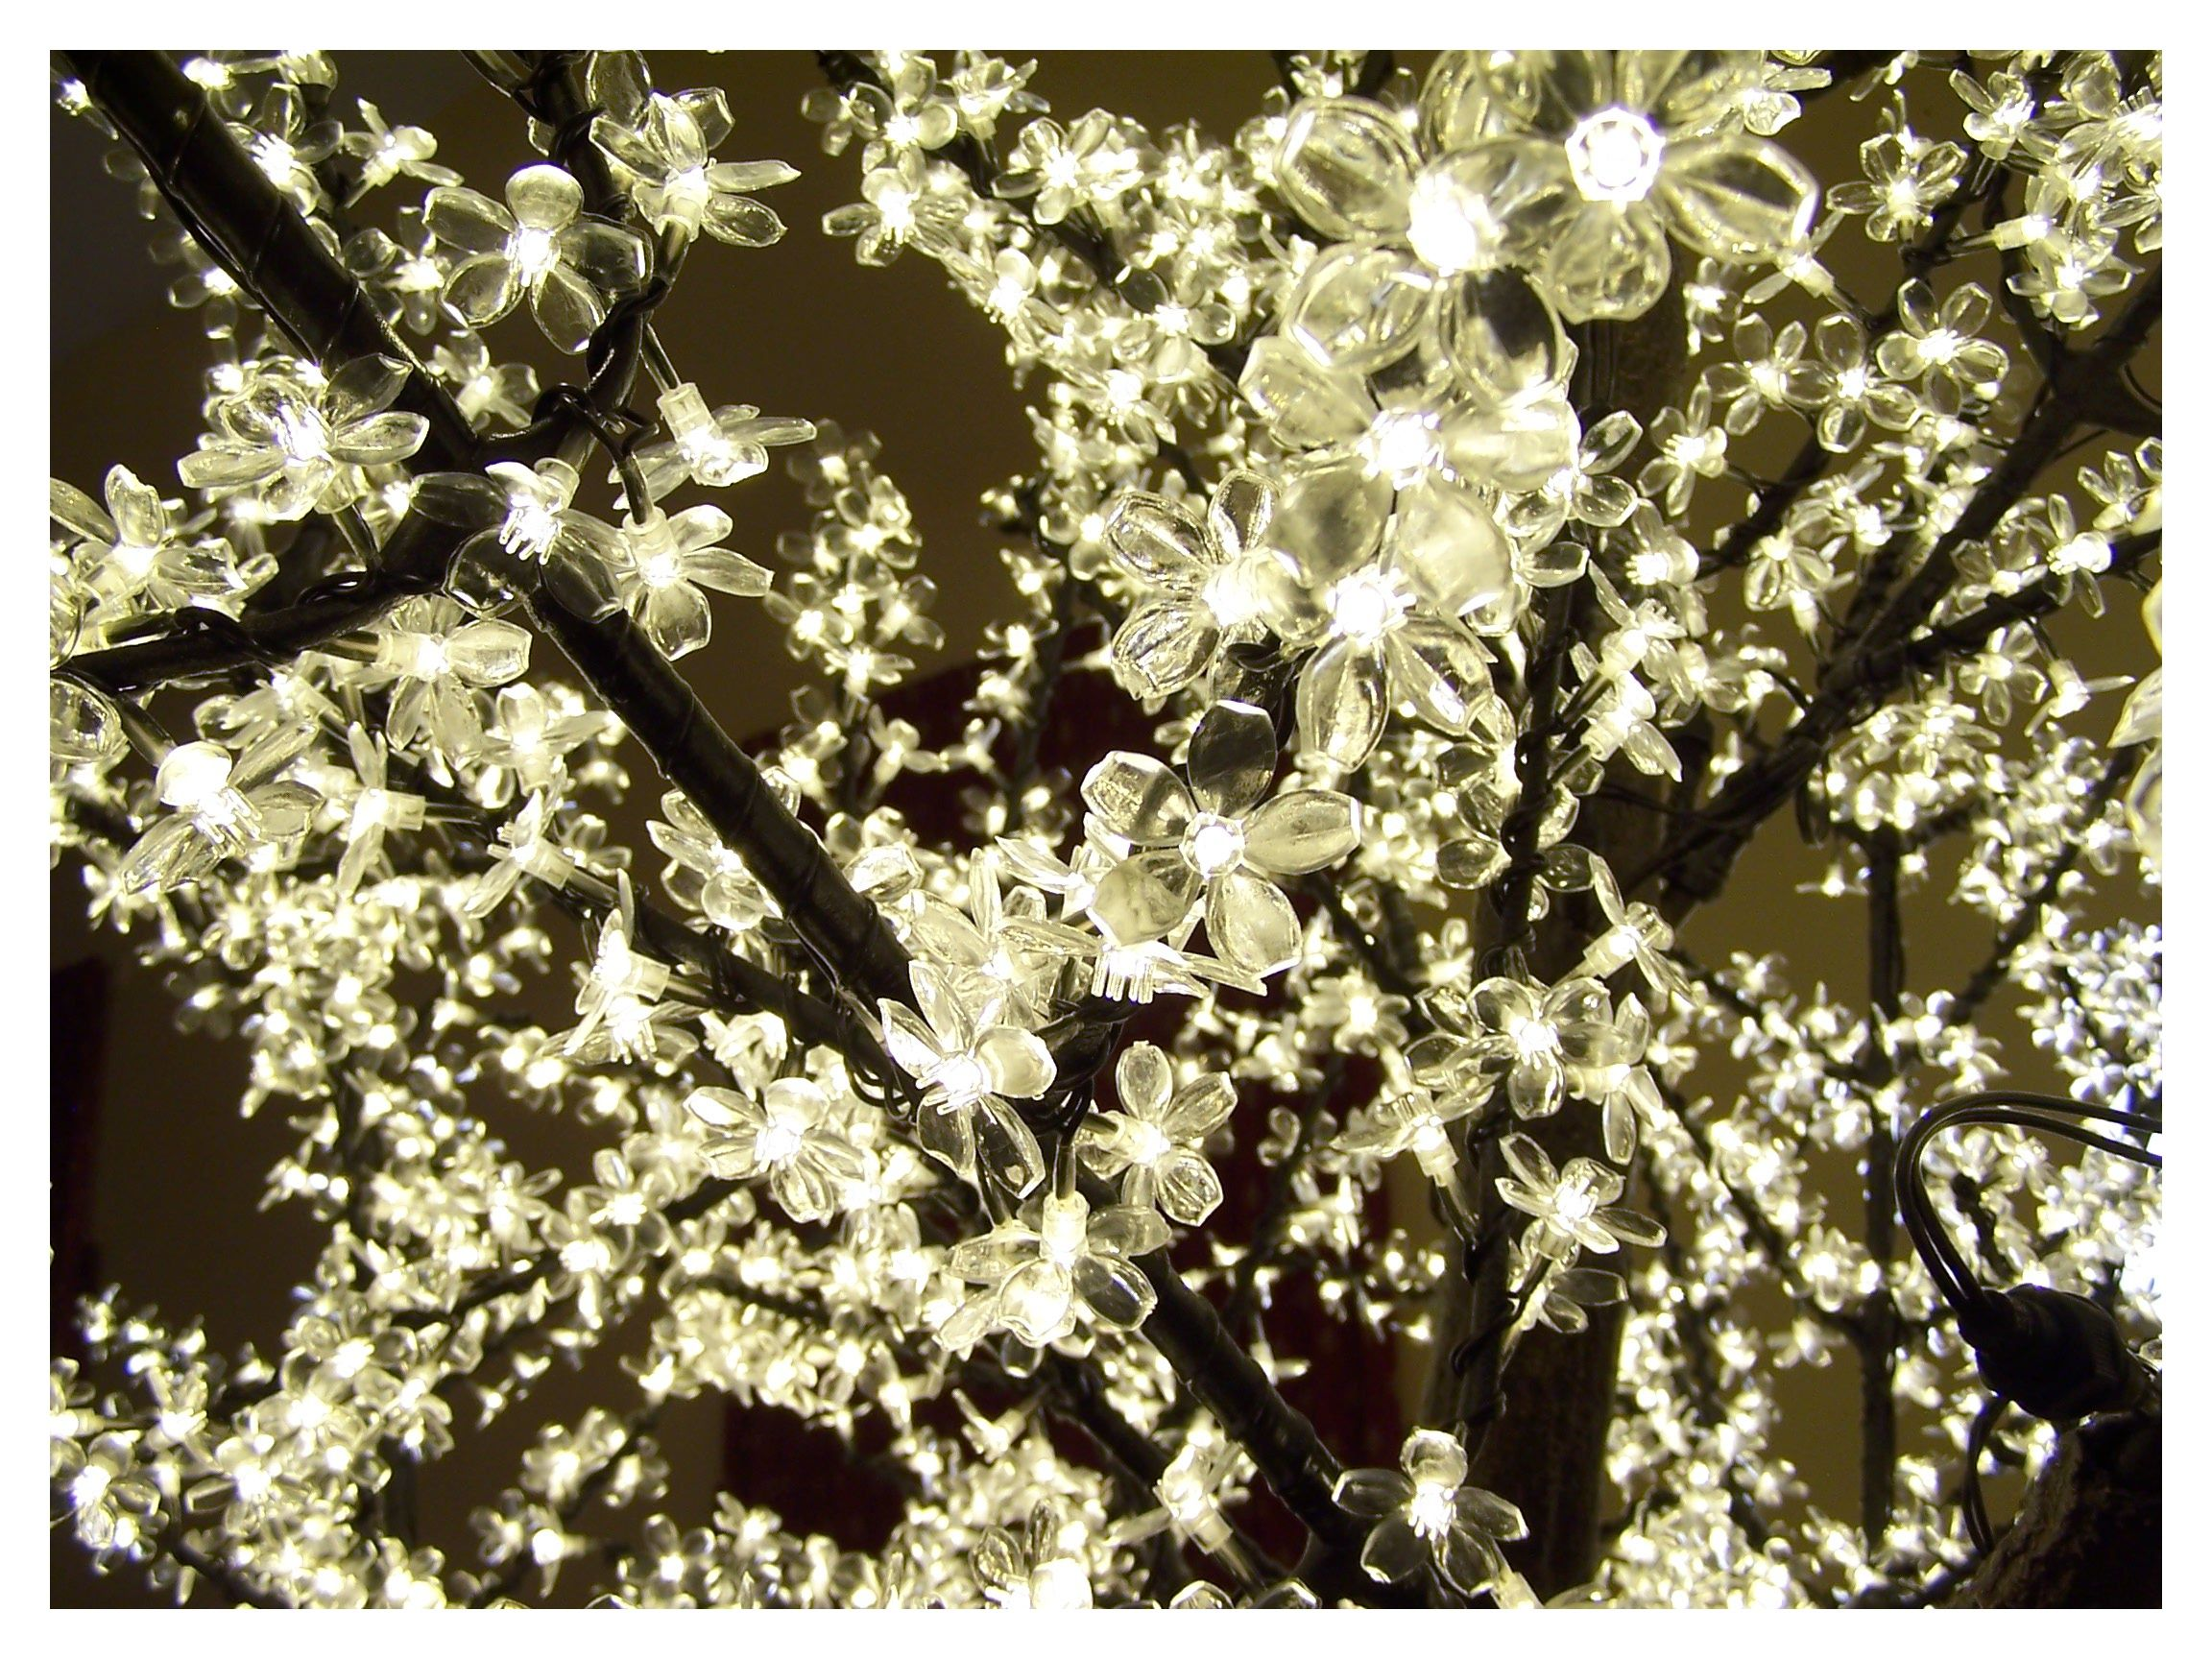 Stunning Led Lit Cherry Blossom Tree Which Is 3 Metres Tall By 2 1 2 Metres Wide Illuminate Your Wedding Venue A Cherry Blossom Tree Wedding Venues Led Lights